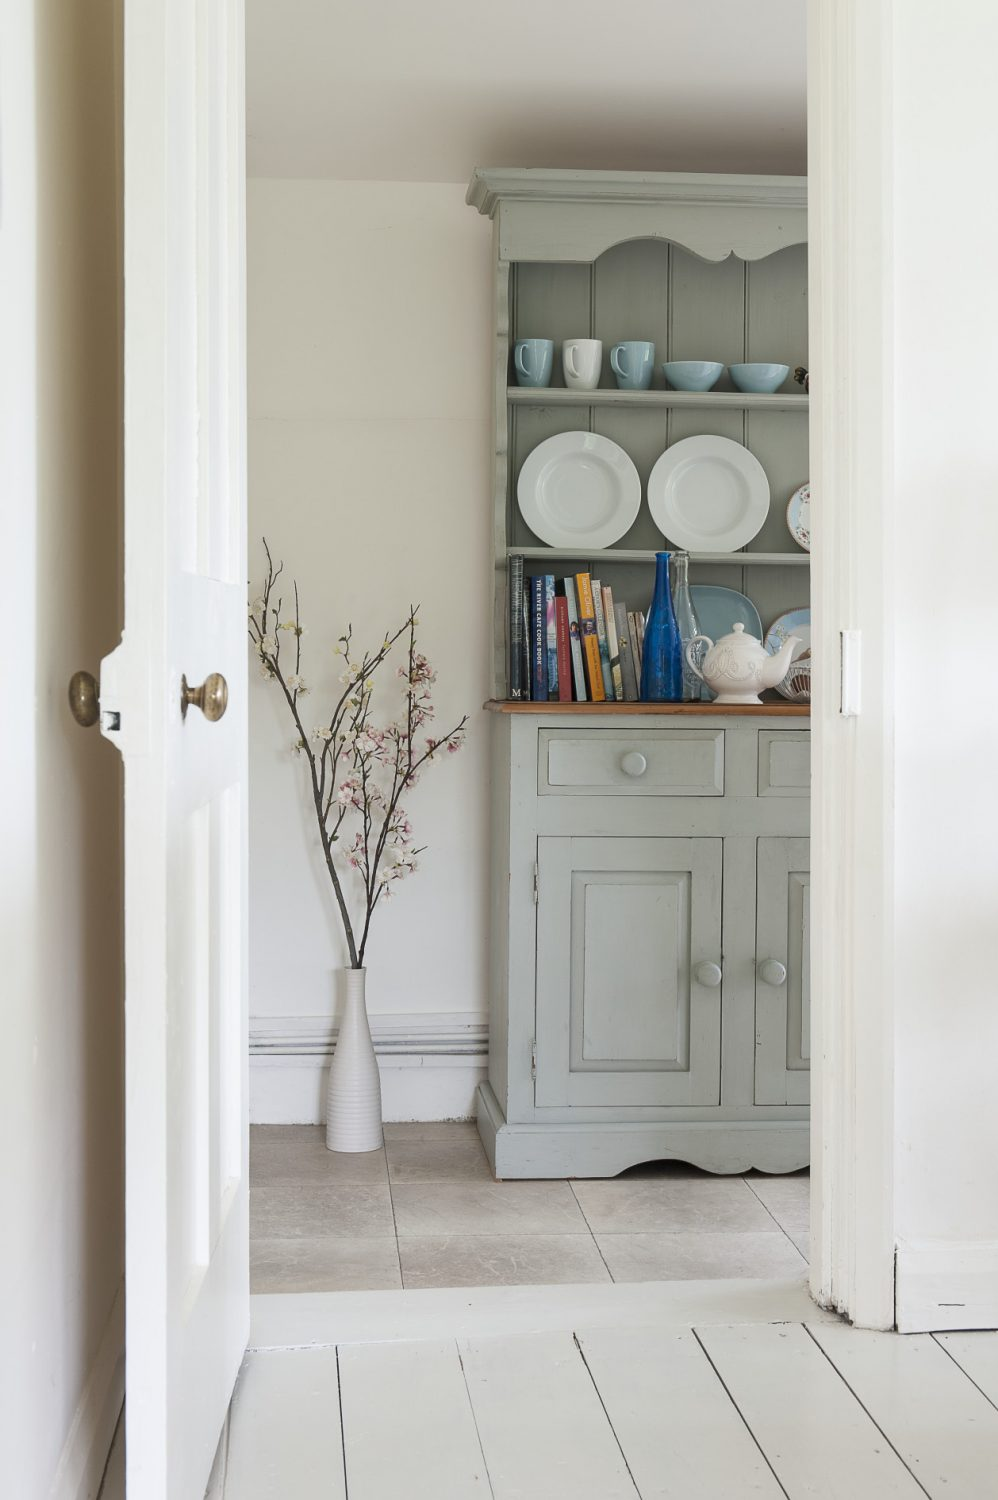 A door from the sitting room leads into the kitchen, which is surprisingly large for a small cottage